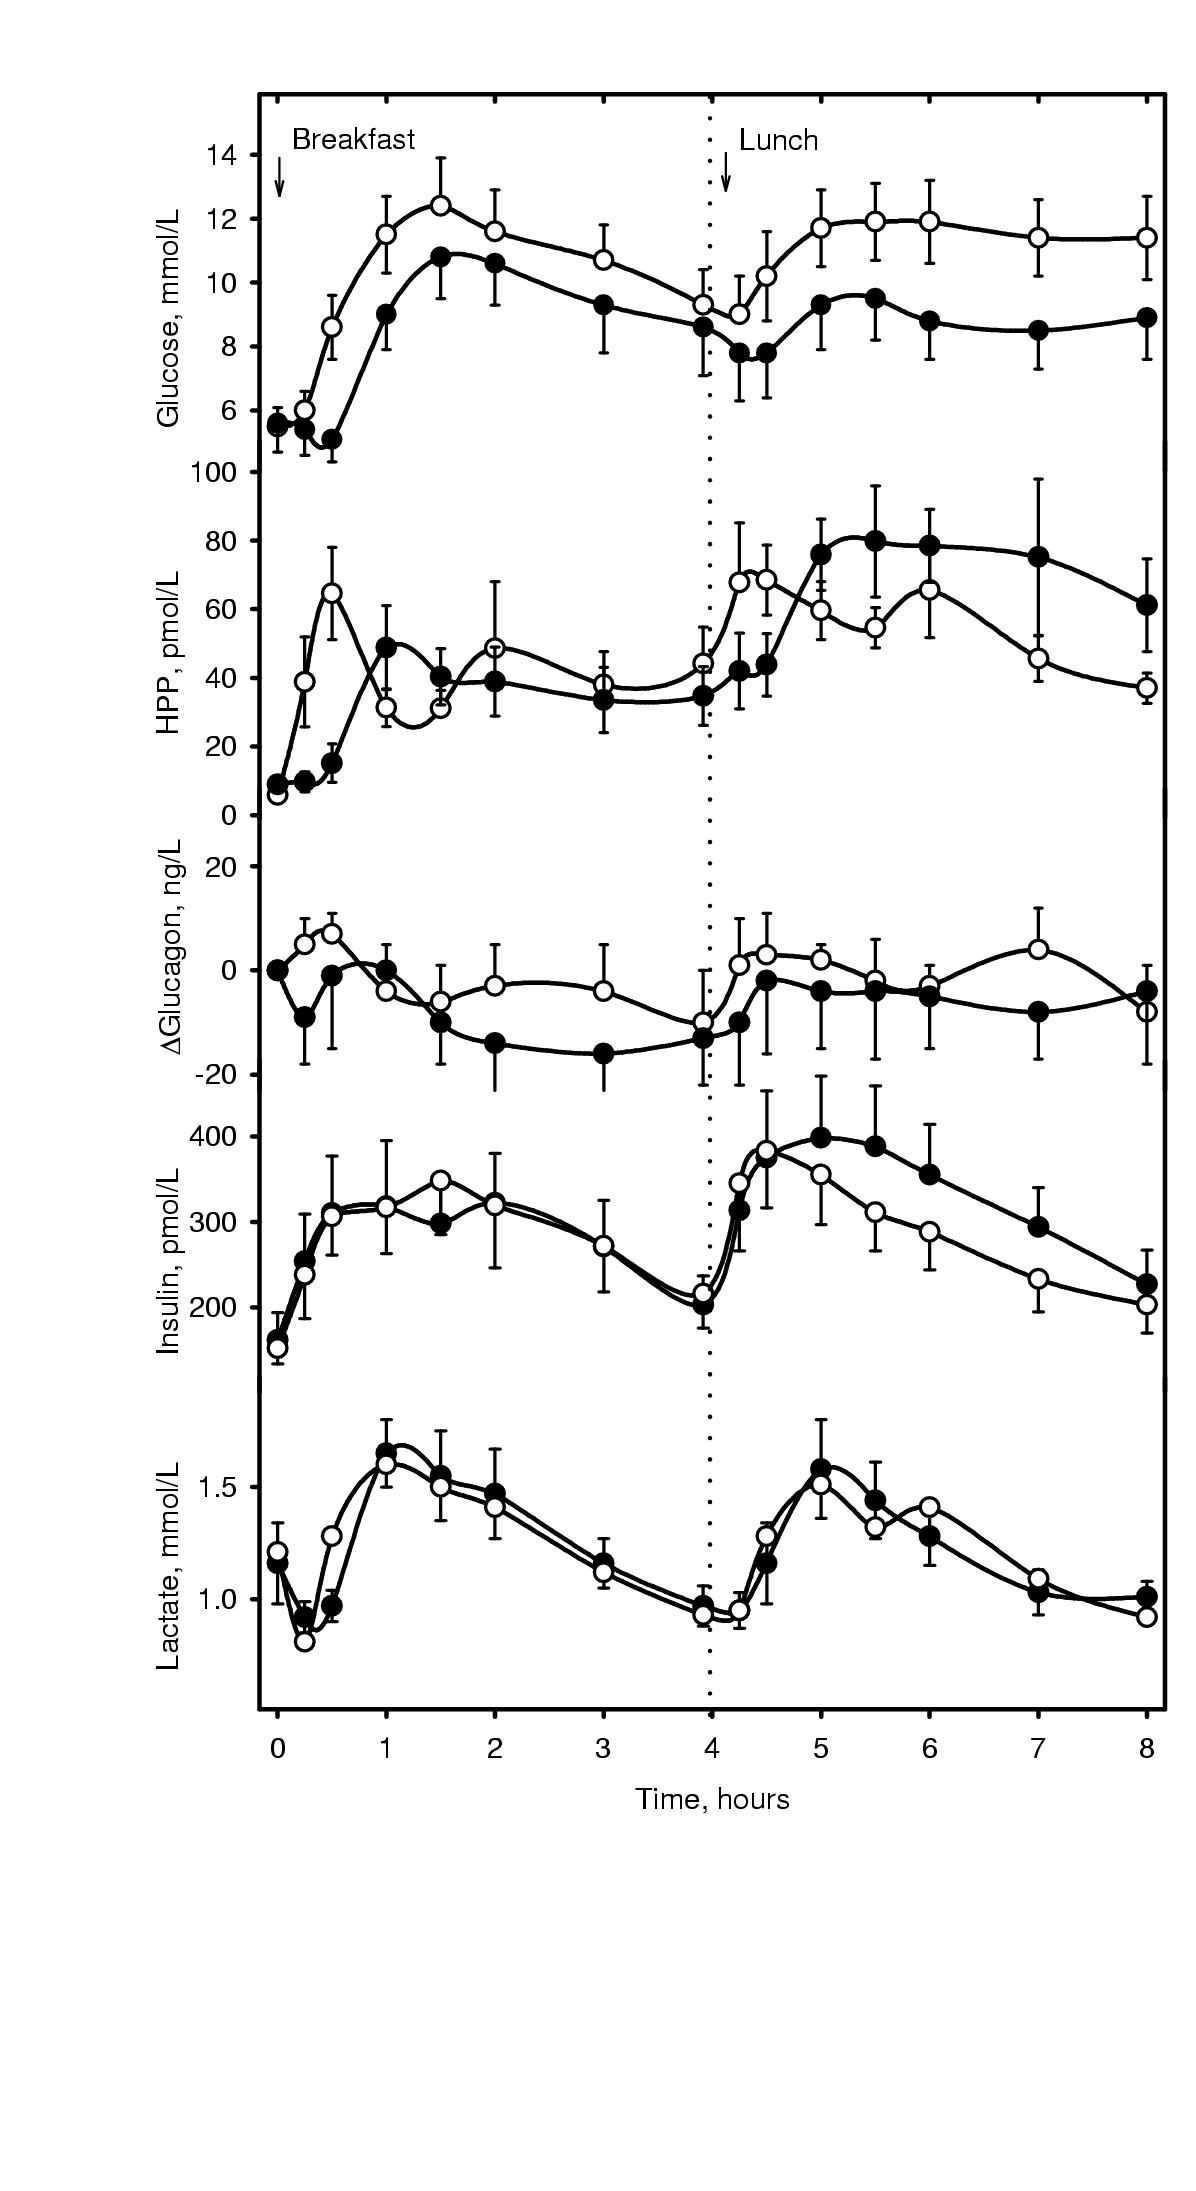 http://static-content.springer.com/image/art%3A10.1186%2F1472-6823-3-3/MediaObjects/12902_2002_Article_7_Fig2_HTML.jpg